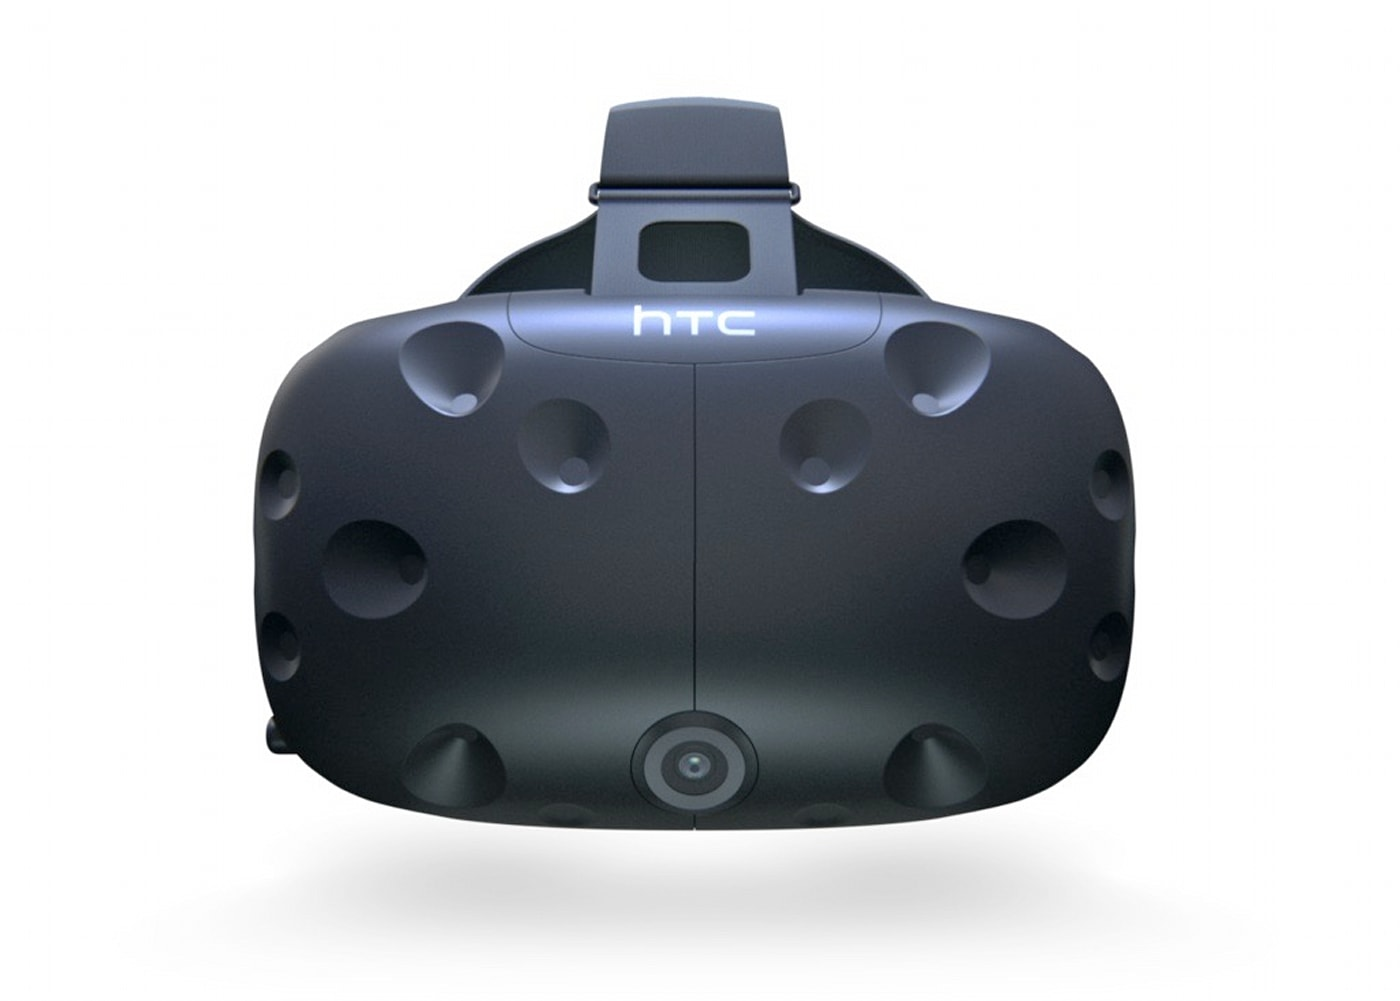 HTC's Vive will cost $799, ship in early April